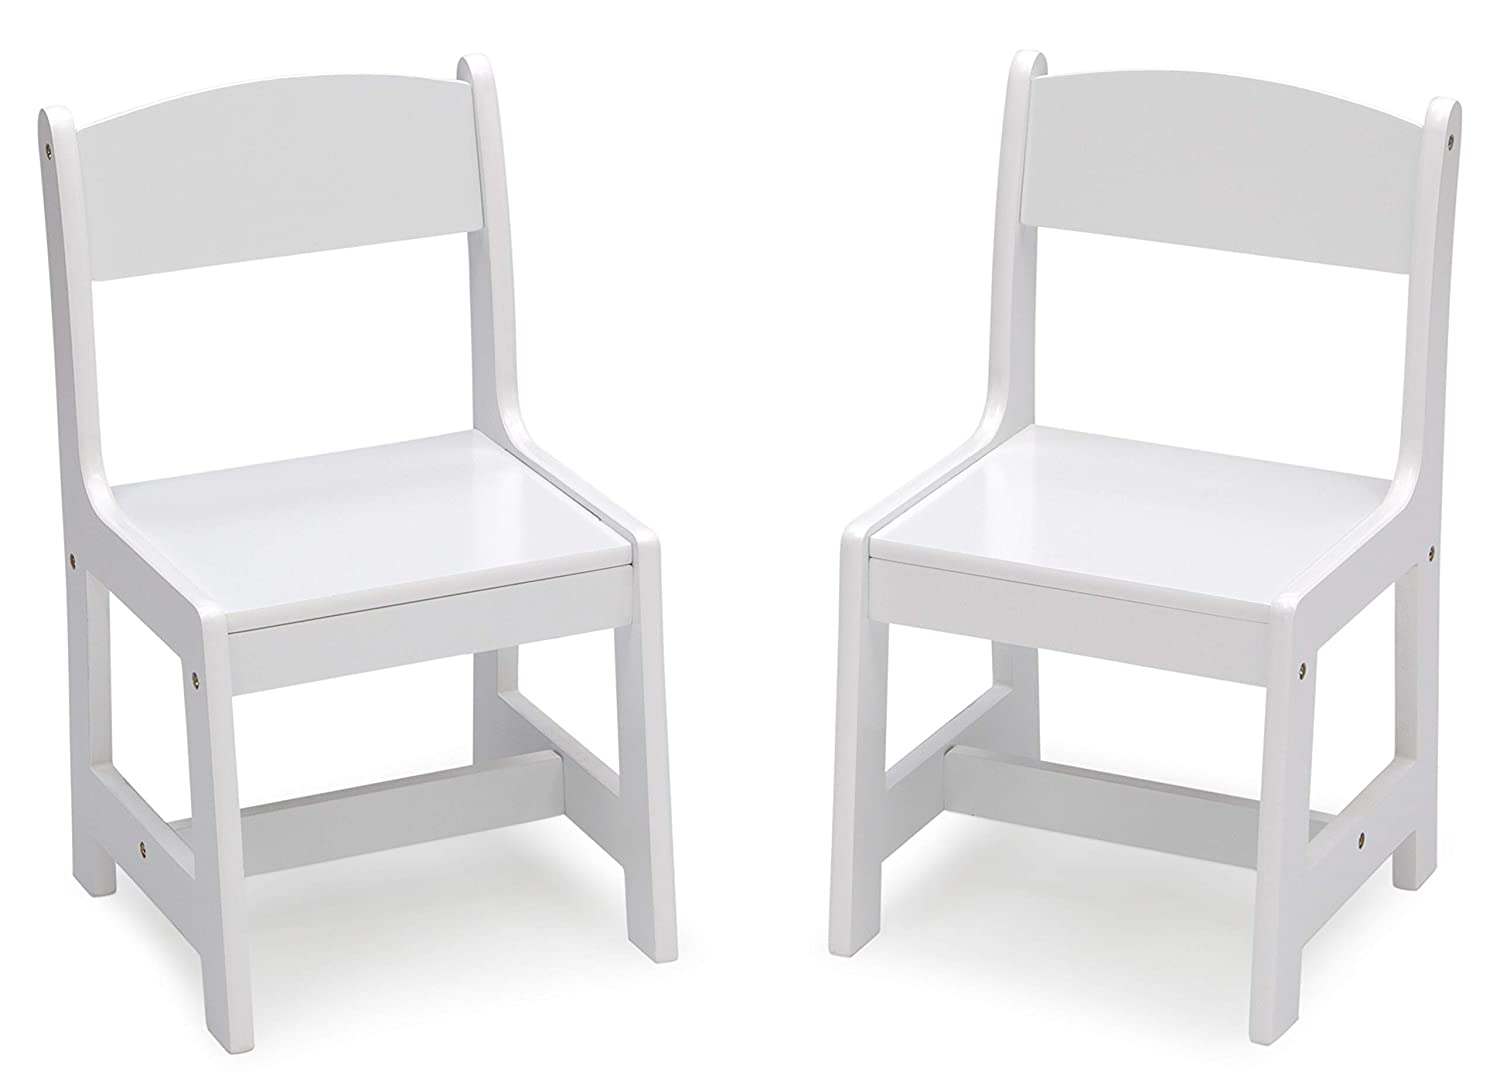 Delta Children MySize Wood Kids Chairs for Playroom [Pack of 2], Bianca White